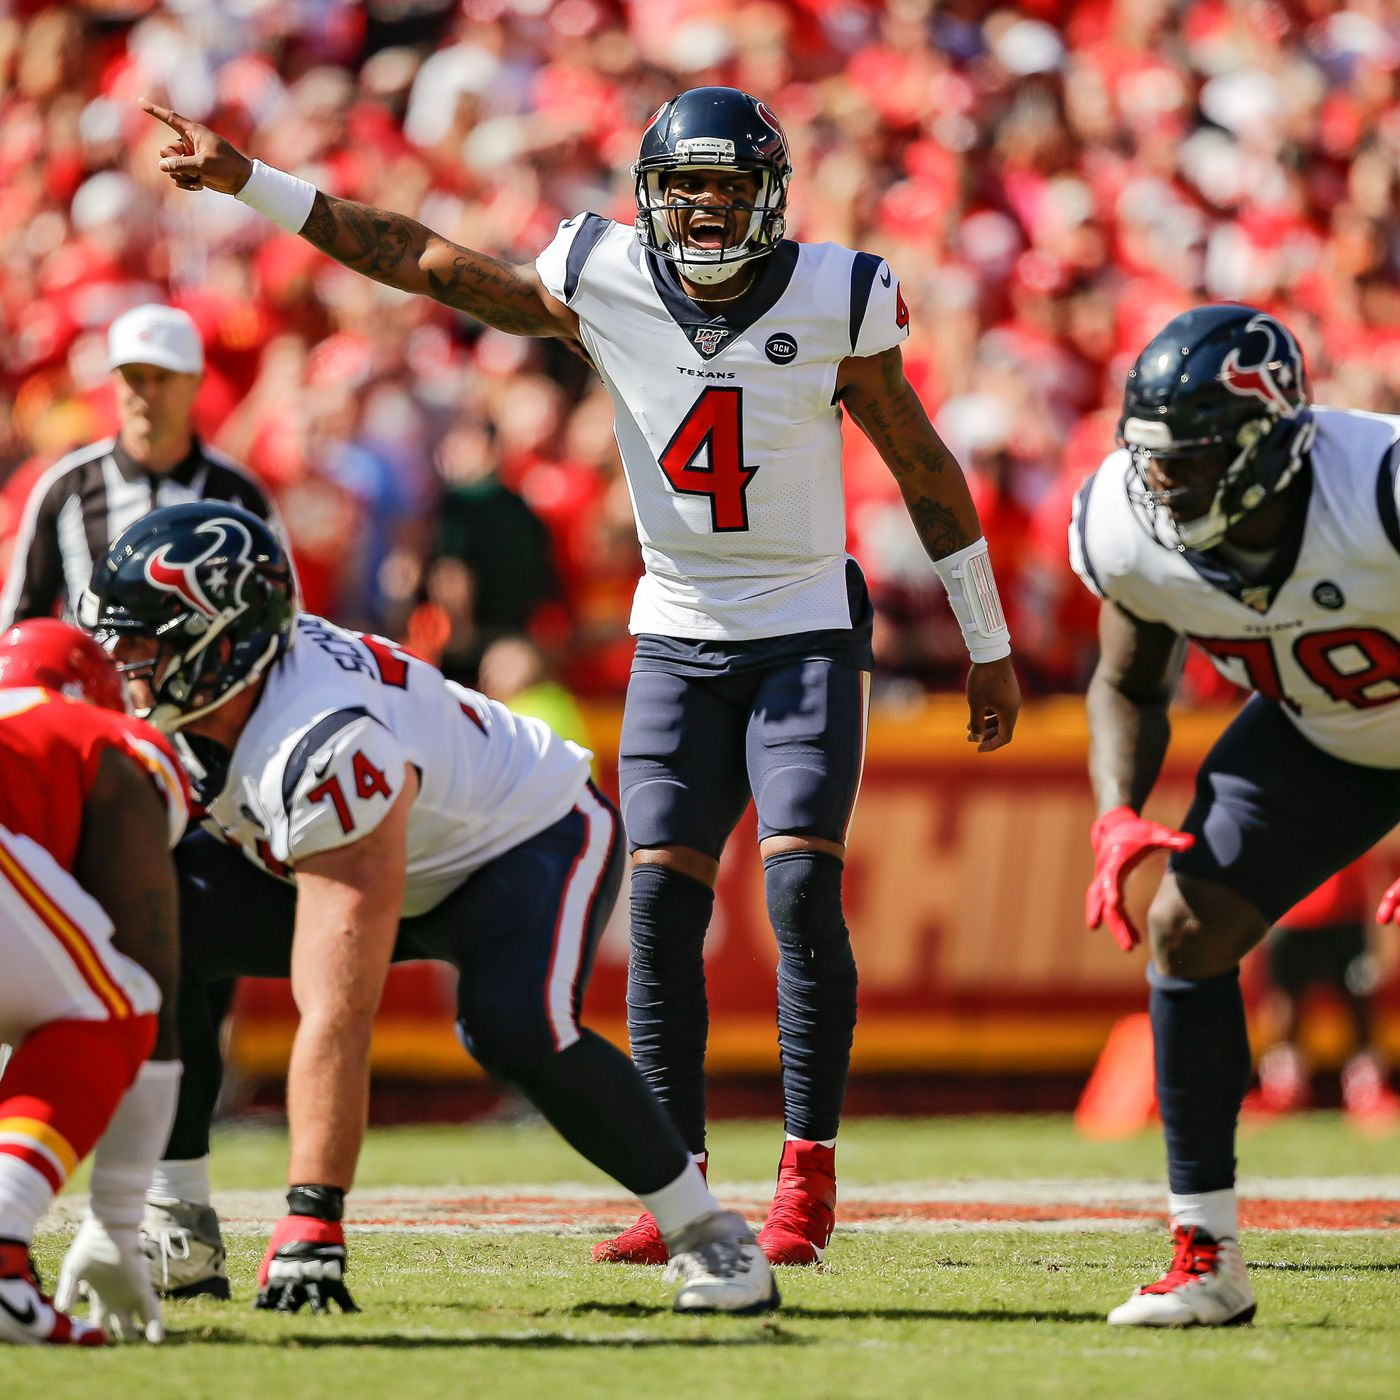 Nfl Playoffs 2020 Texans Vs Chiefs Game Time Tv Schedule Online Streaming Preview Bleeding Green Nation